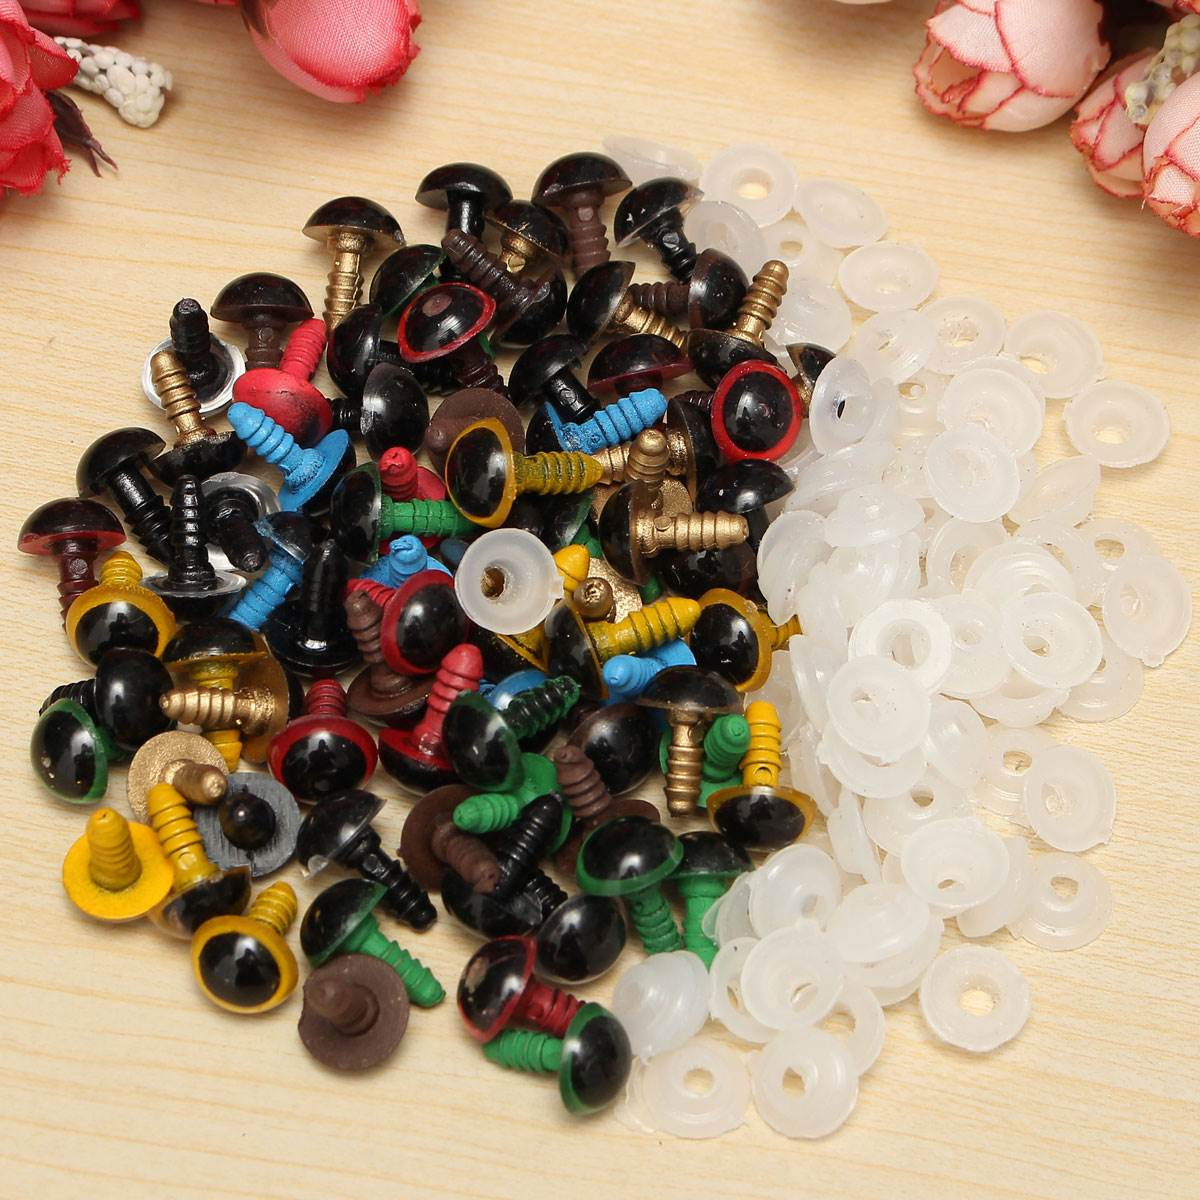 New 80Pcs/40Pairs 10mm Mix Color Plastic Safety Eyes DIY For Teddy Bear Stuffed Toy Snap Animal Puppet Doll Craft Toy Part(China (Mainland))